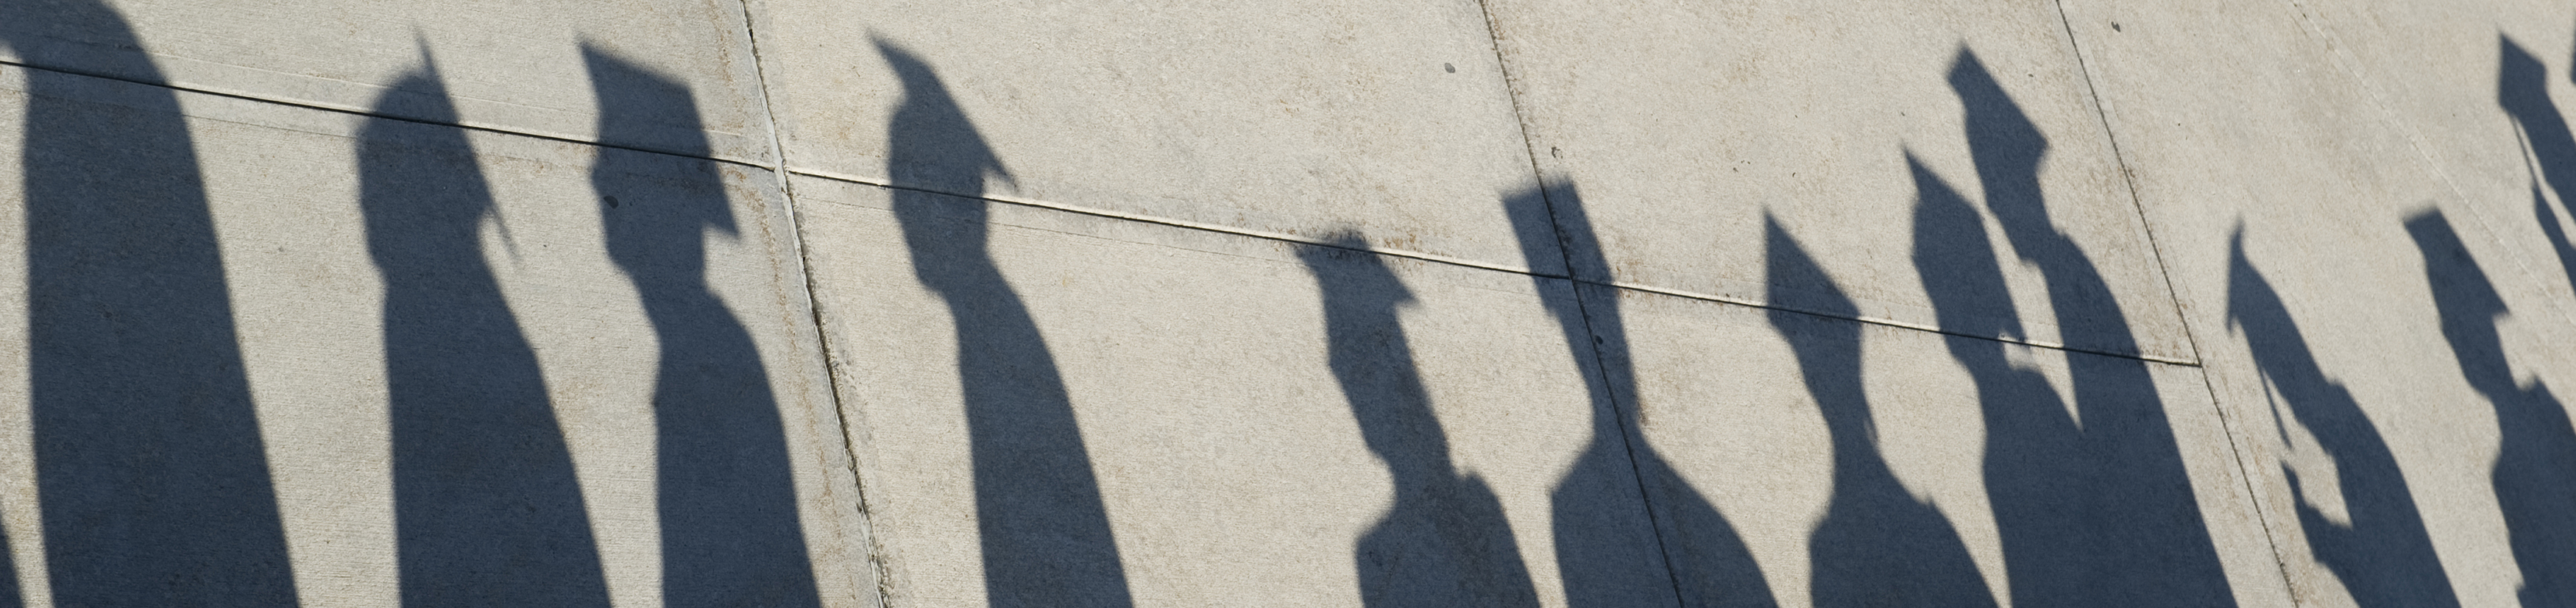 shadows of students in graduate attire